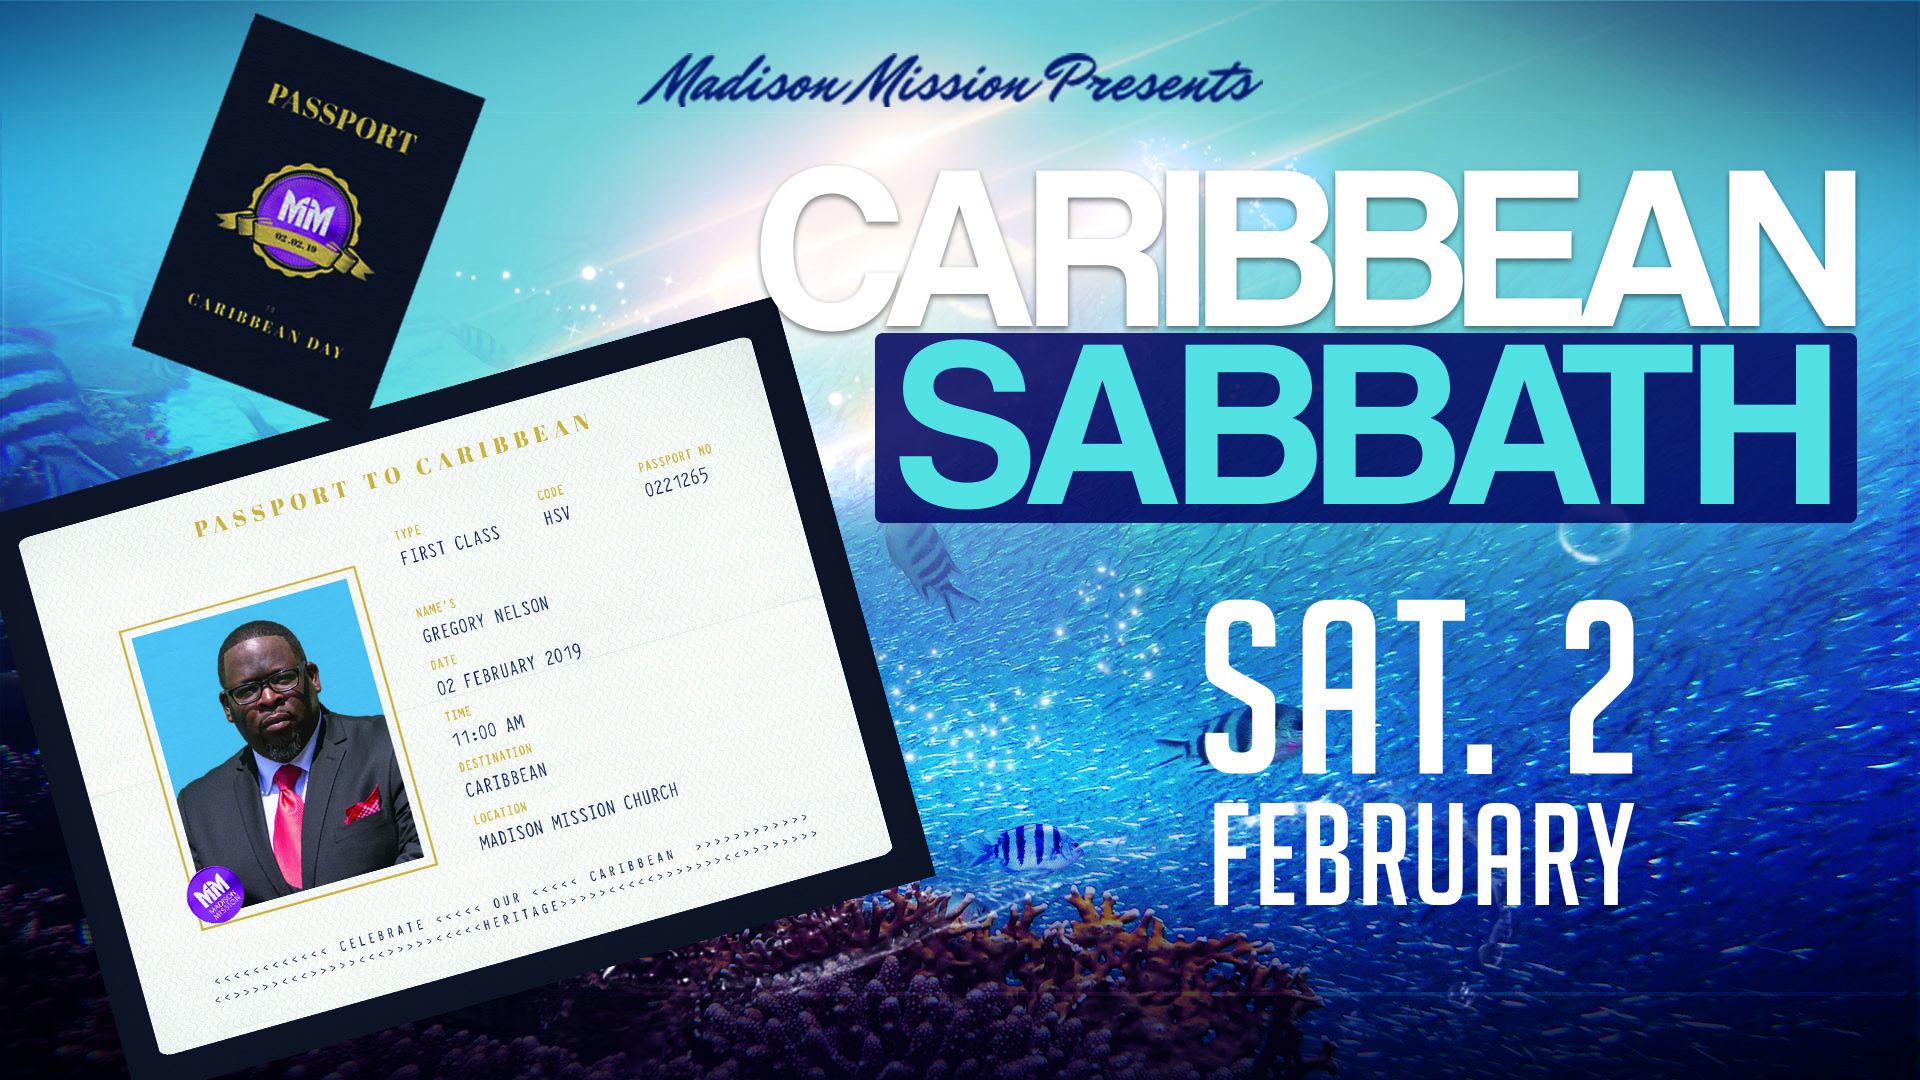 Caribbean Day 2019 Image